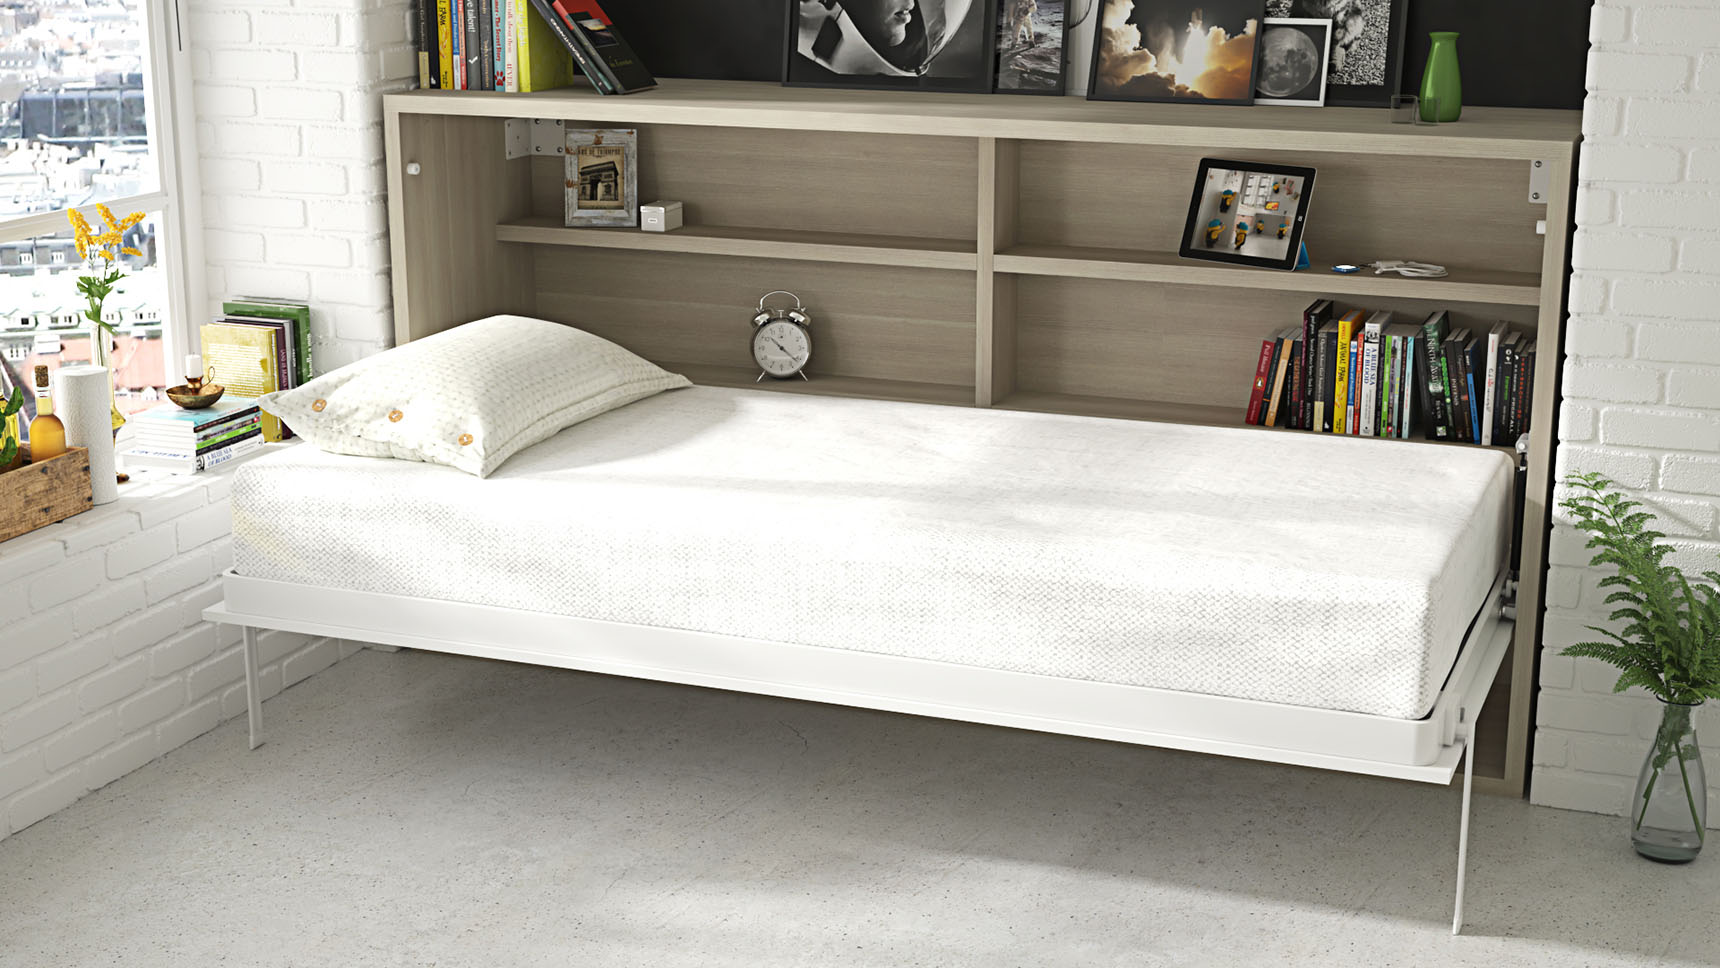 Cama abatible soft ih143